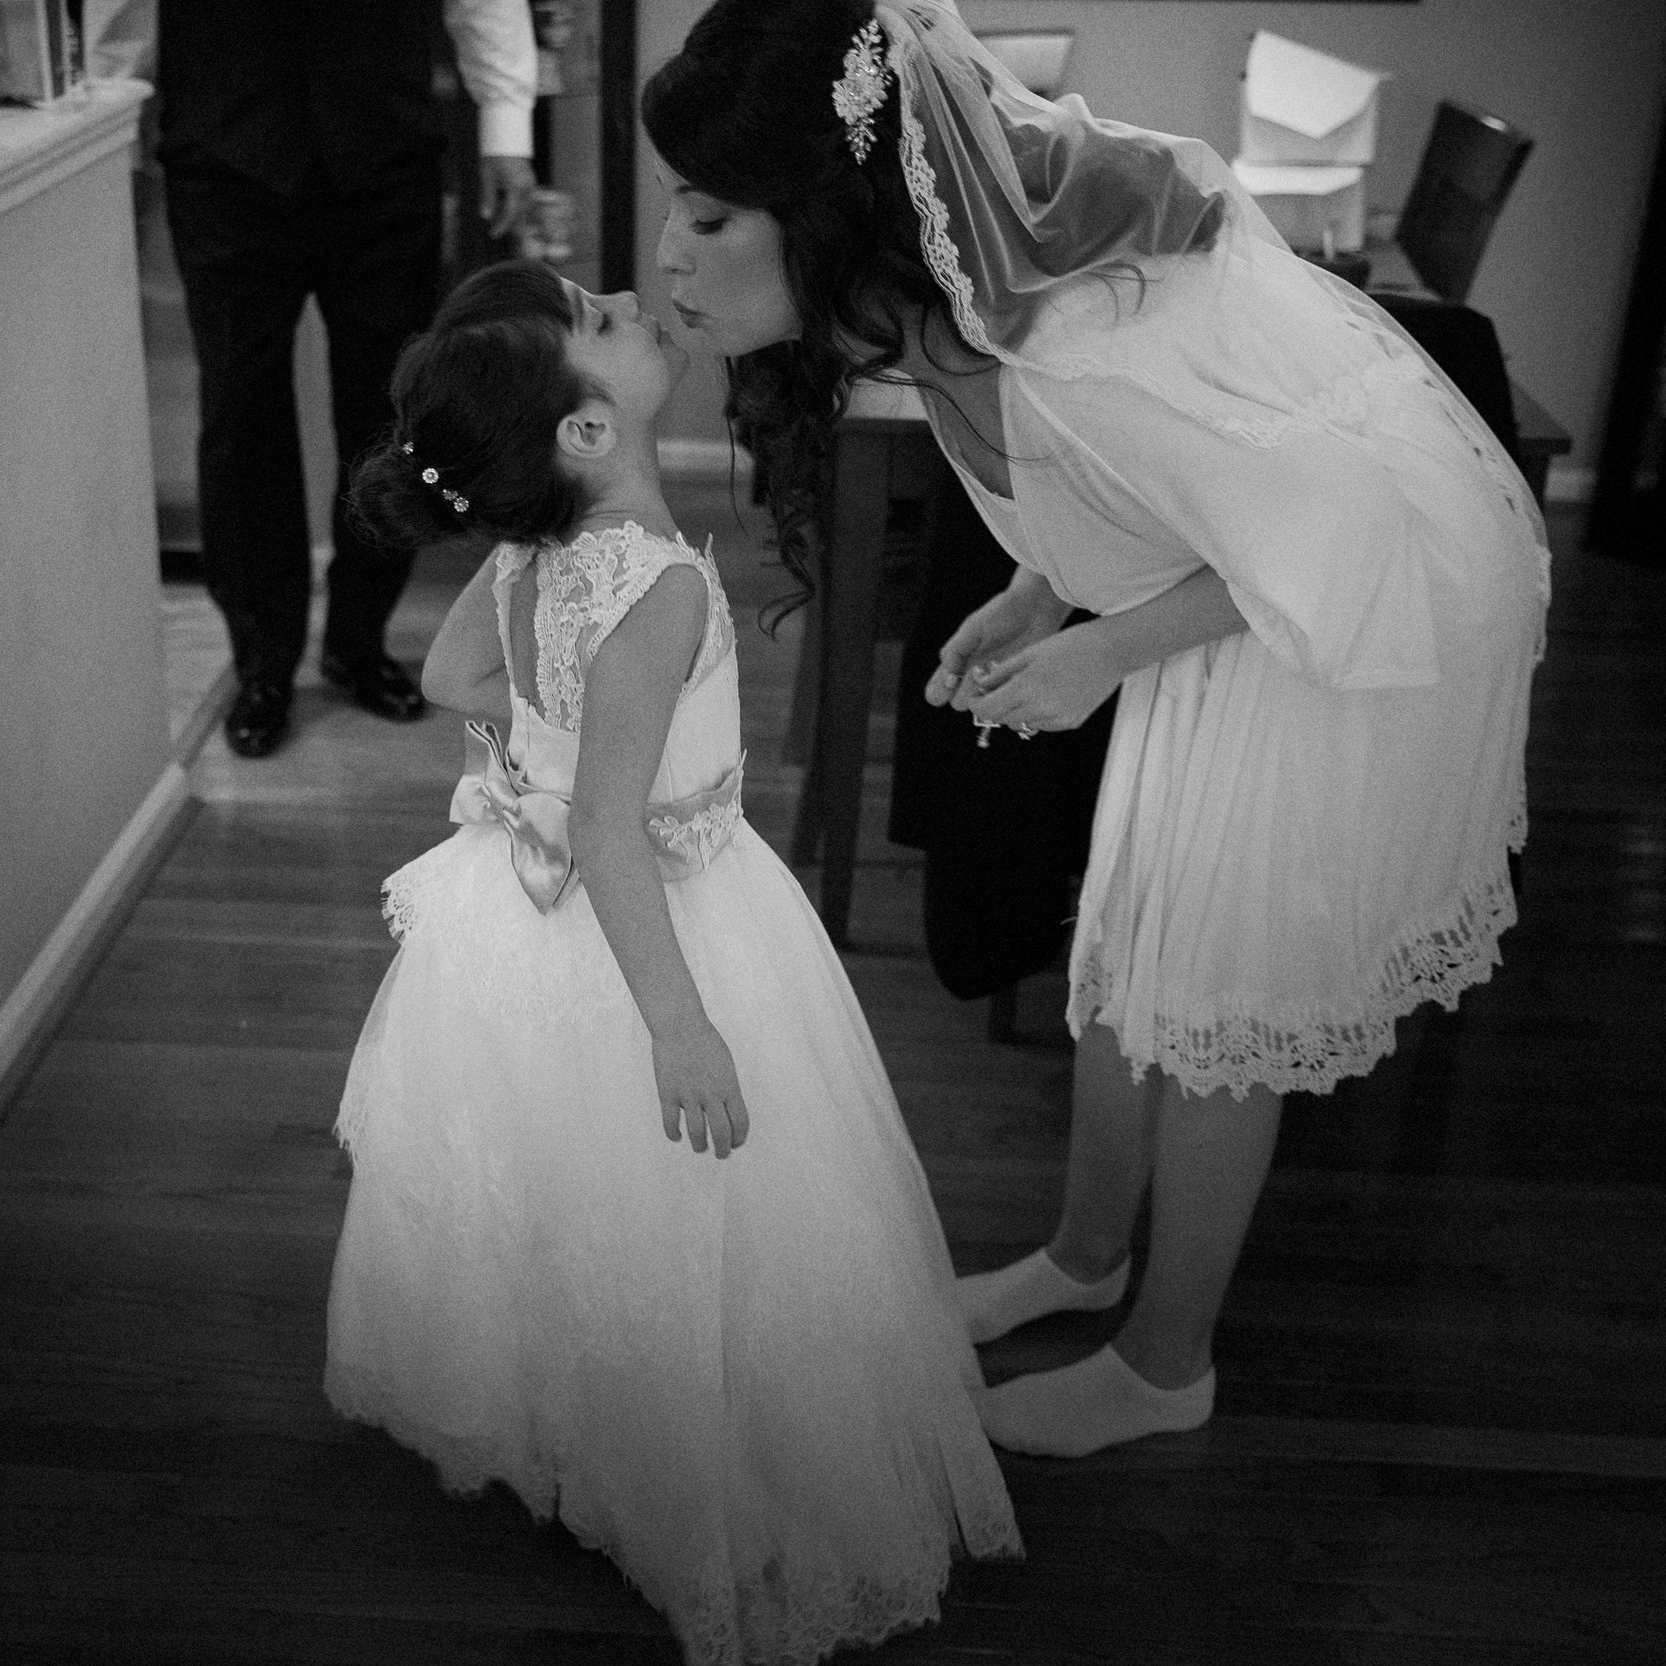 Nuggie flower girl pics are a favorite of mine. Kisses for the bride are a must on her wedding day!